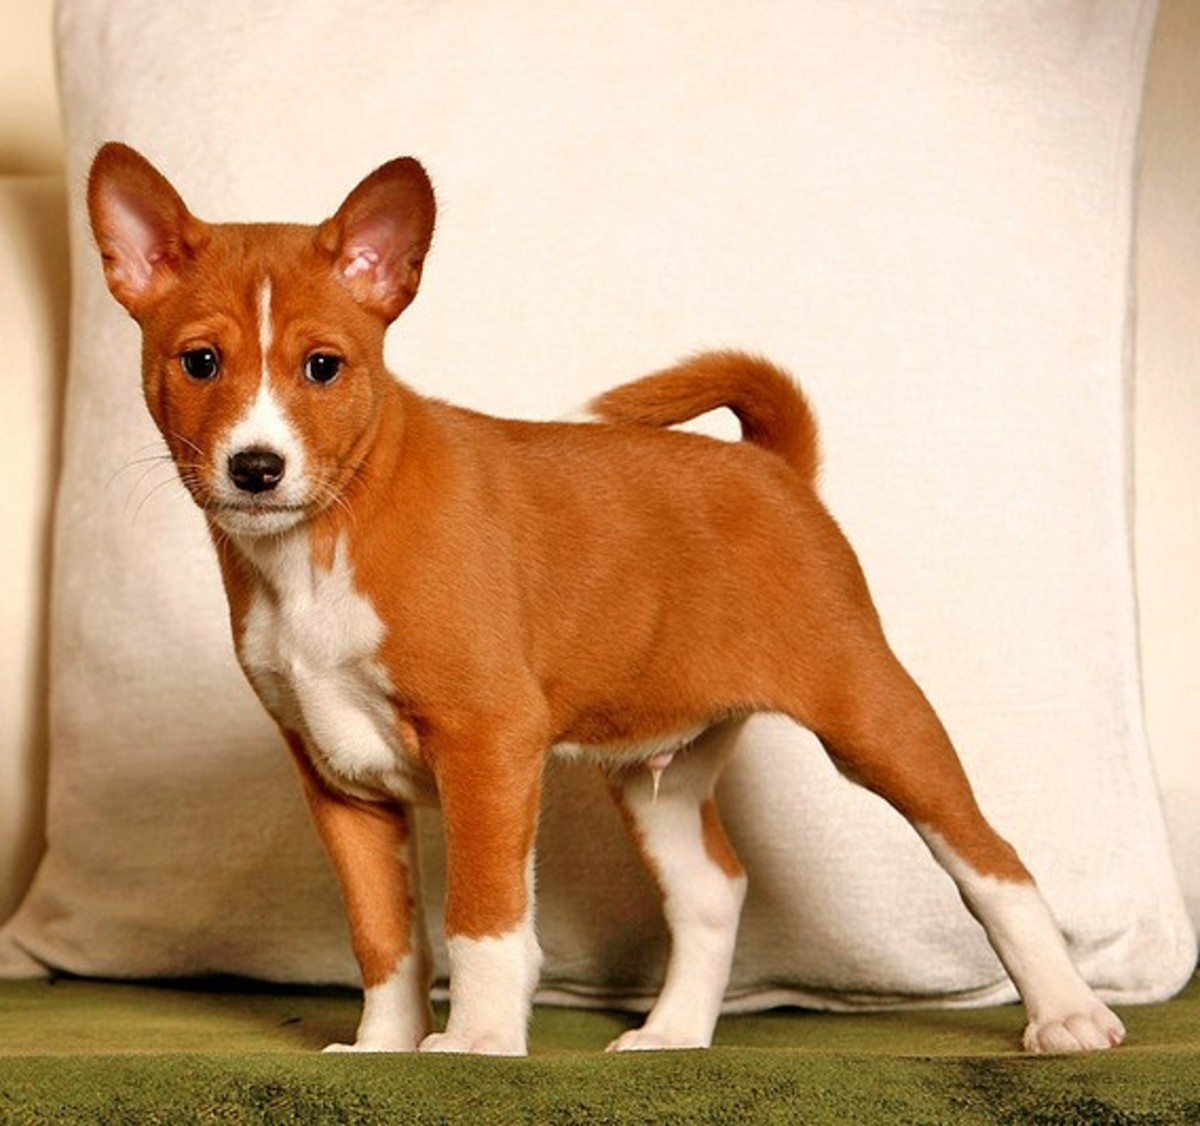 Besides being clean, the Basenji does not bark.